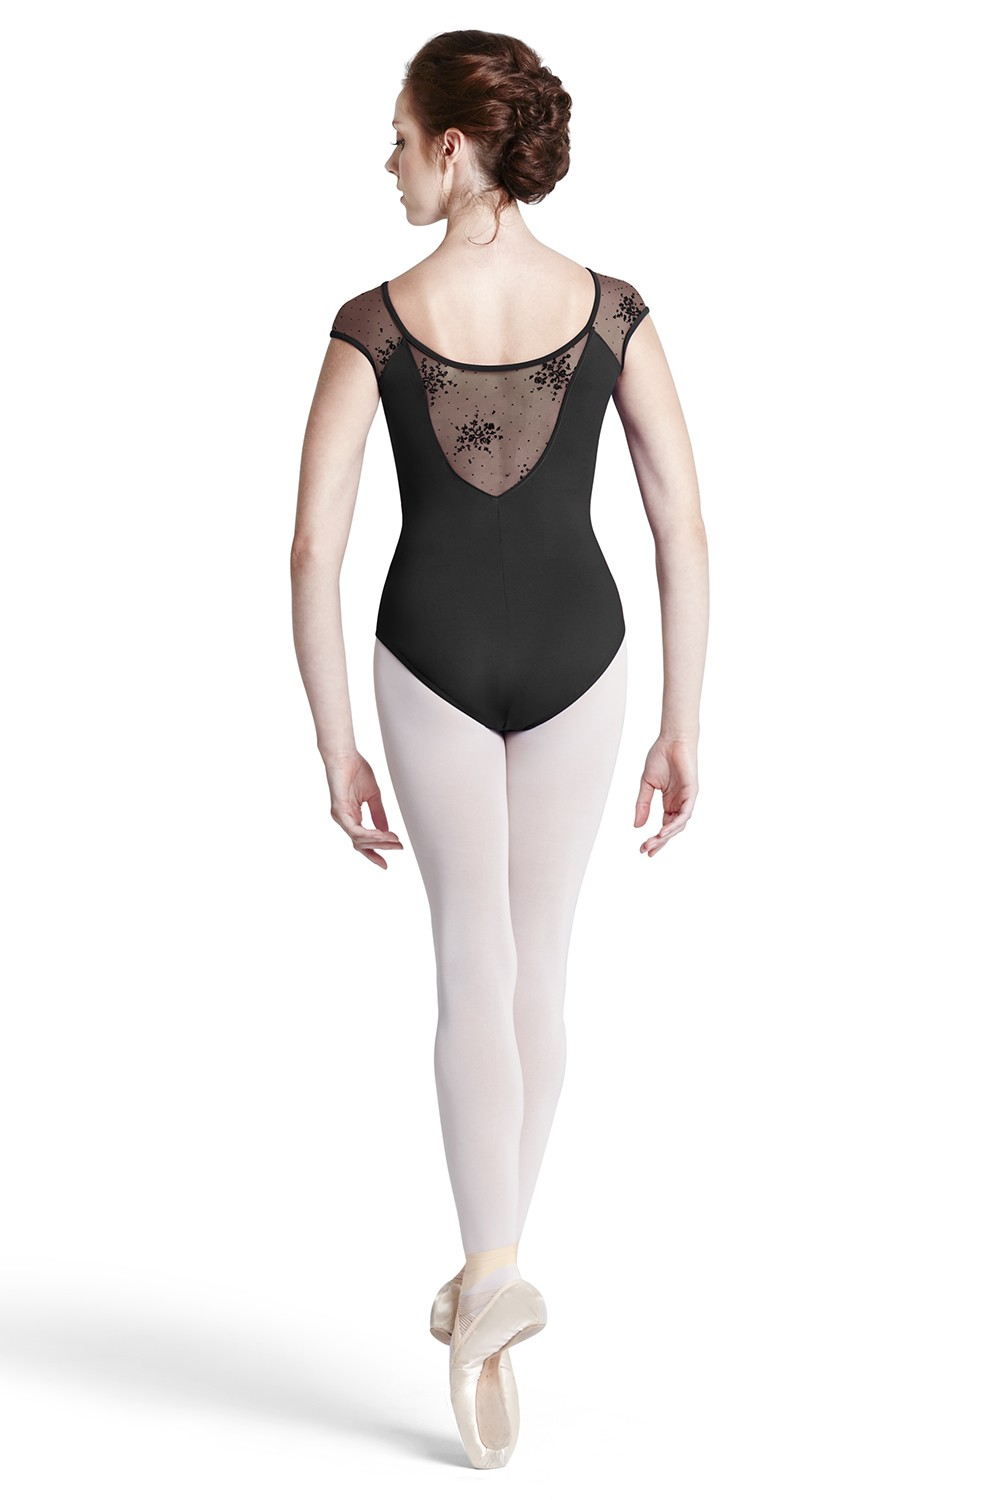 Body Con Maniche Ad Aletta In Rete Con Motivi Floreali Floccati Women's Dance Leotards